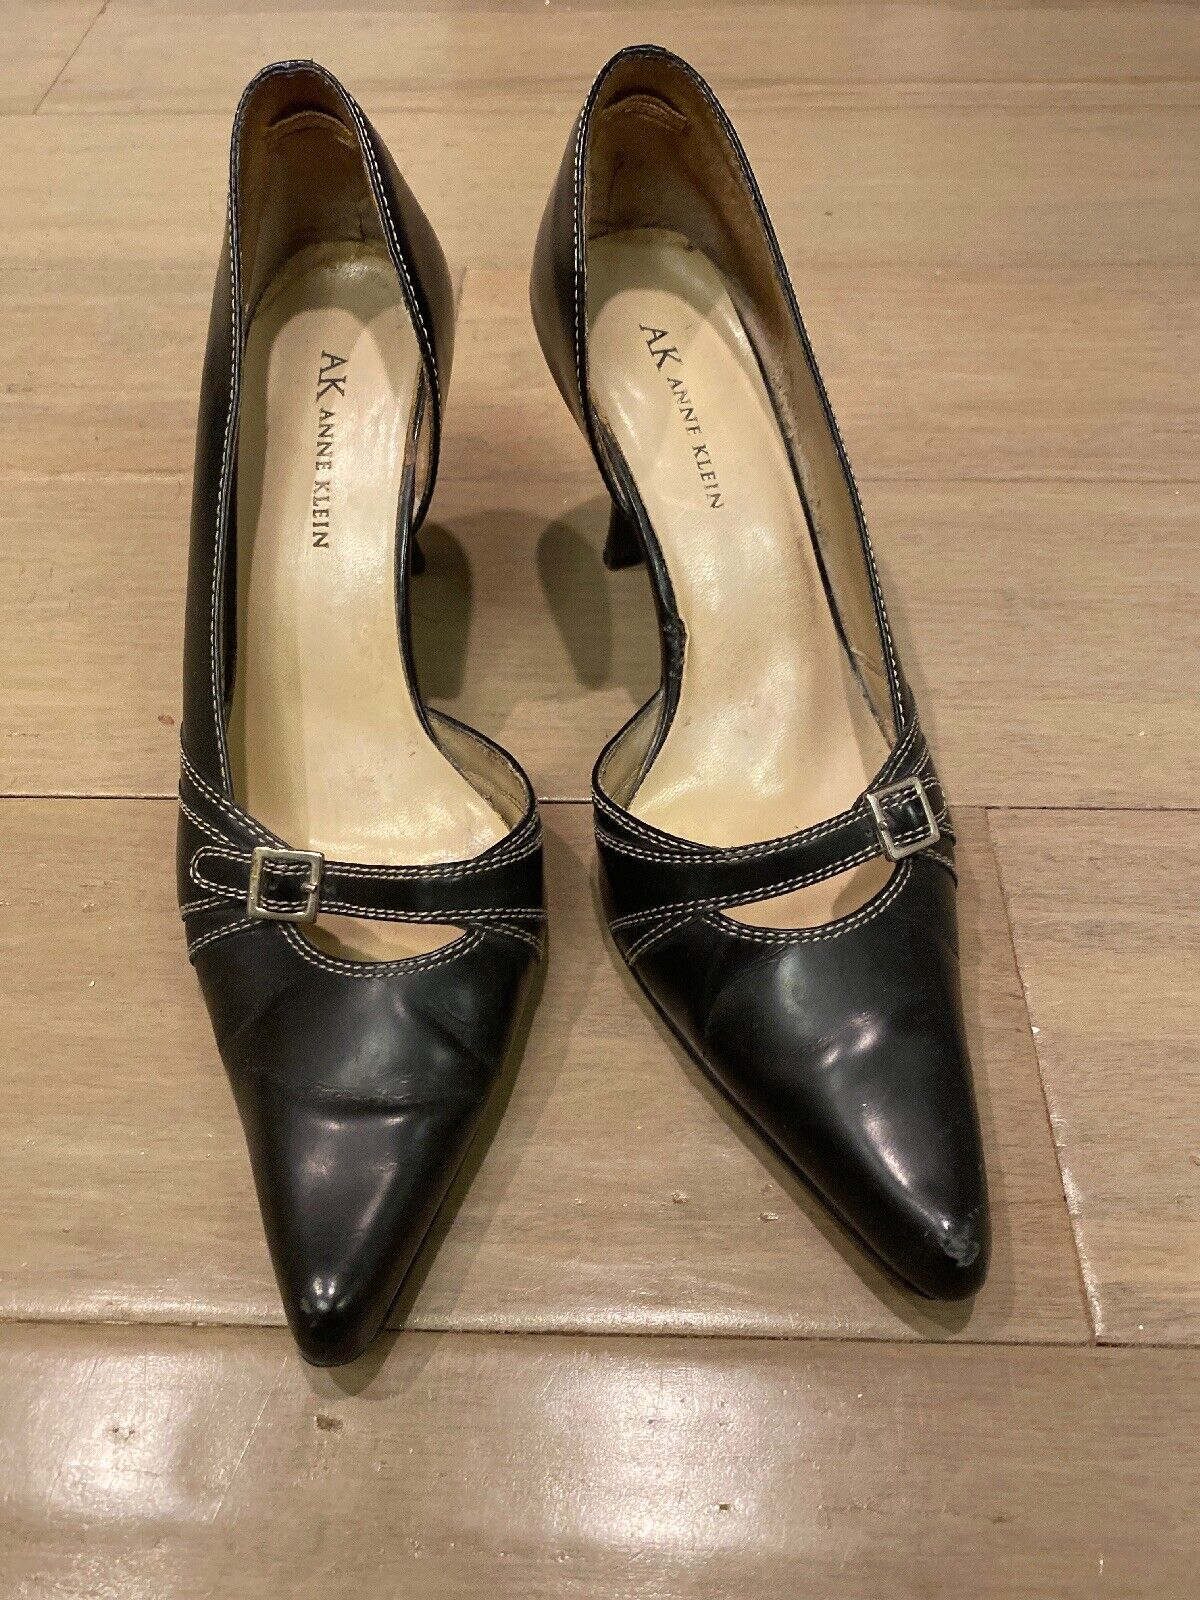 ANNE KLEIN Women's Black Leather Pointed Pumps Heels Shoes Size 7.5